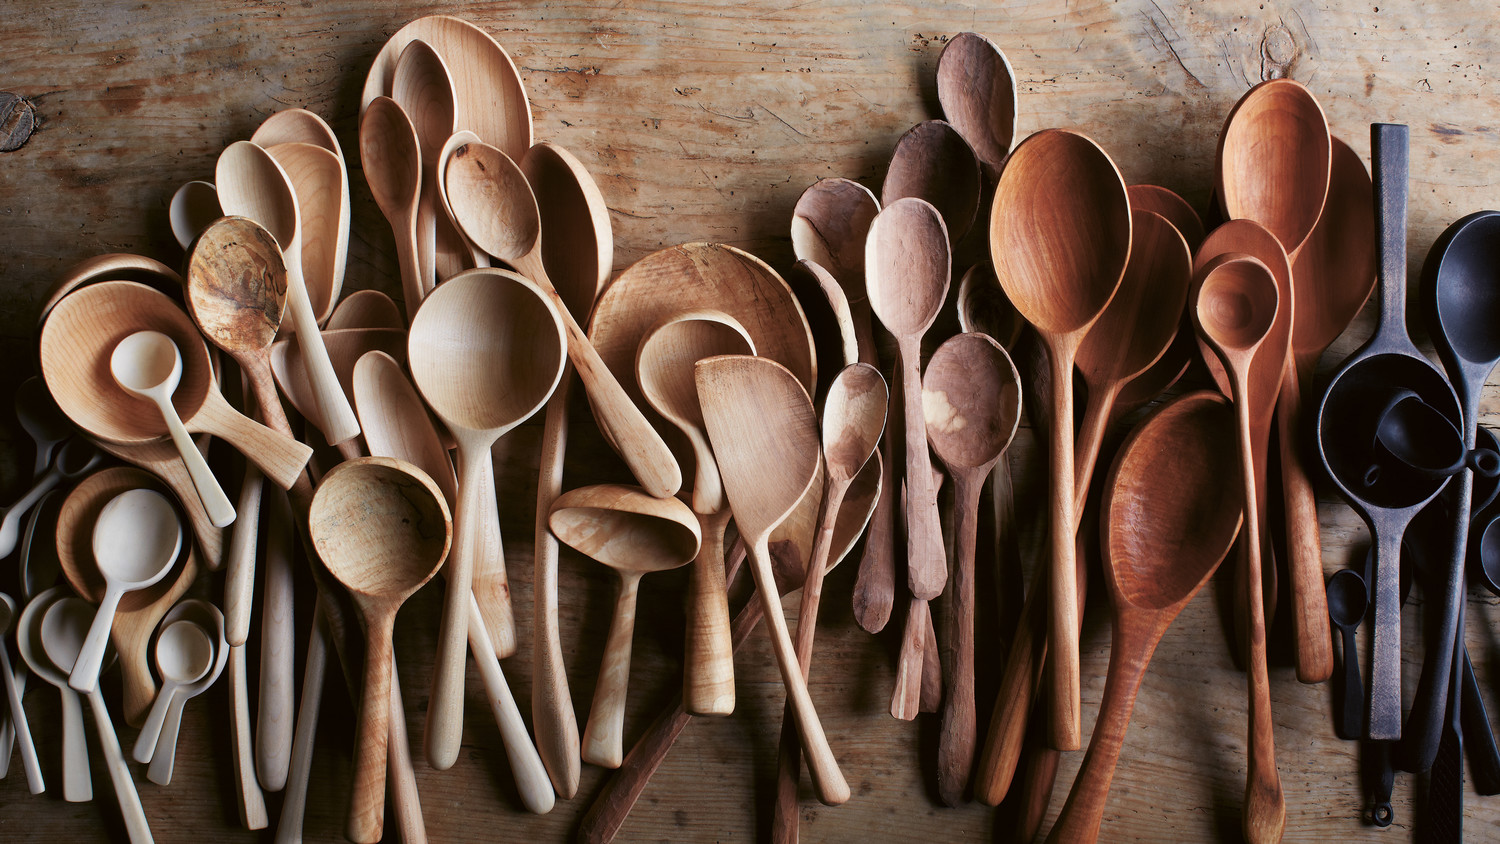 Wood Carving The Secrets To Making Your Own Kitchen Tools Home Decor And More Martha Stewart